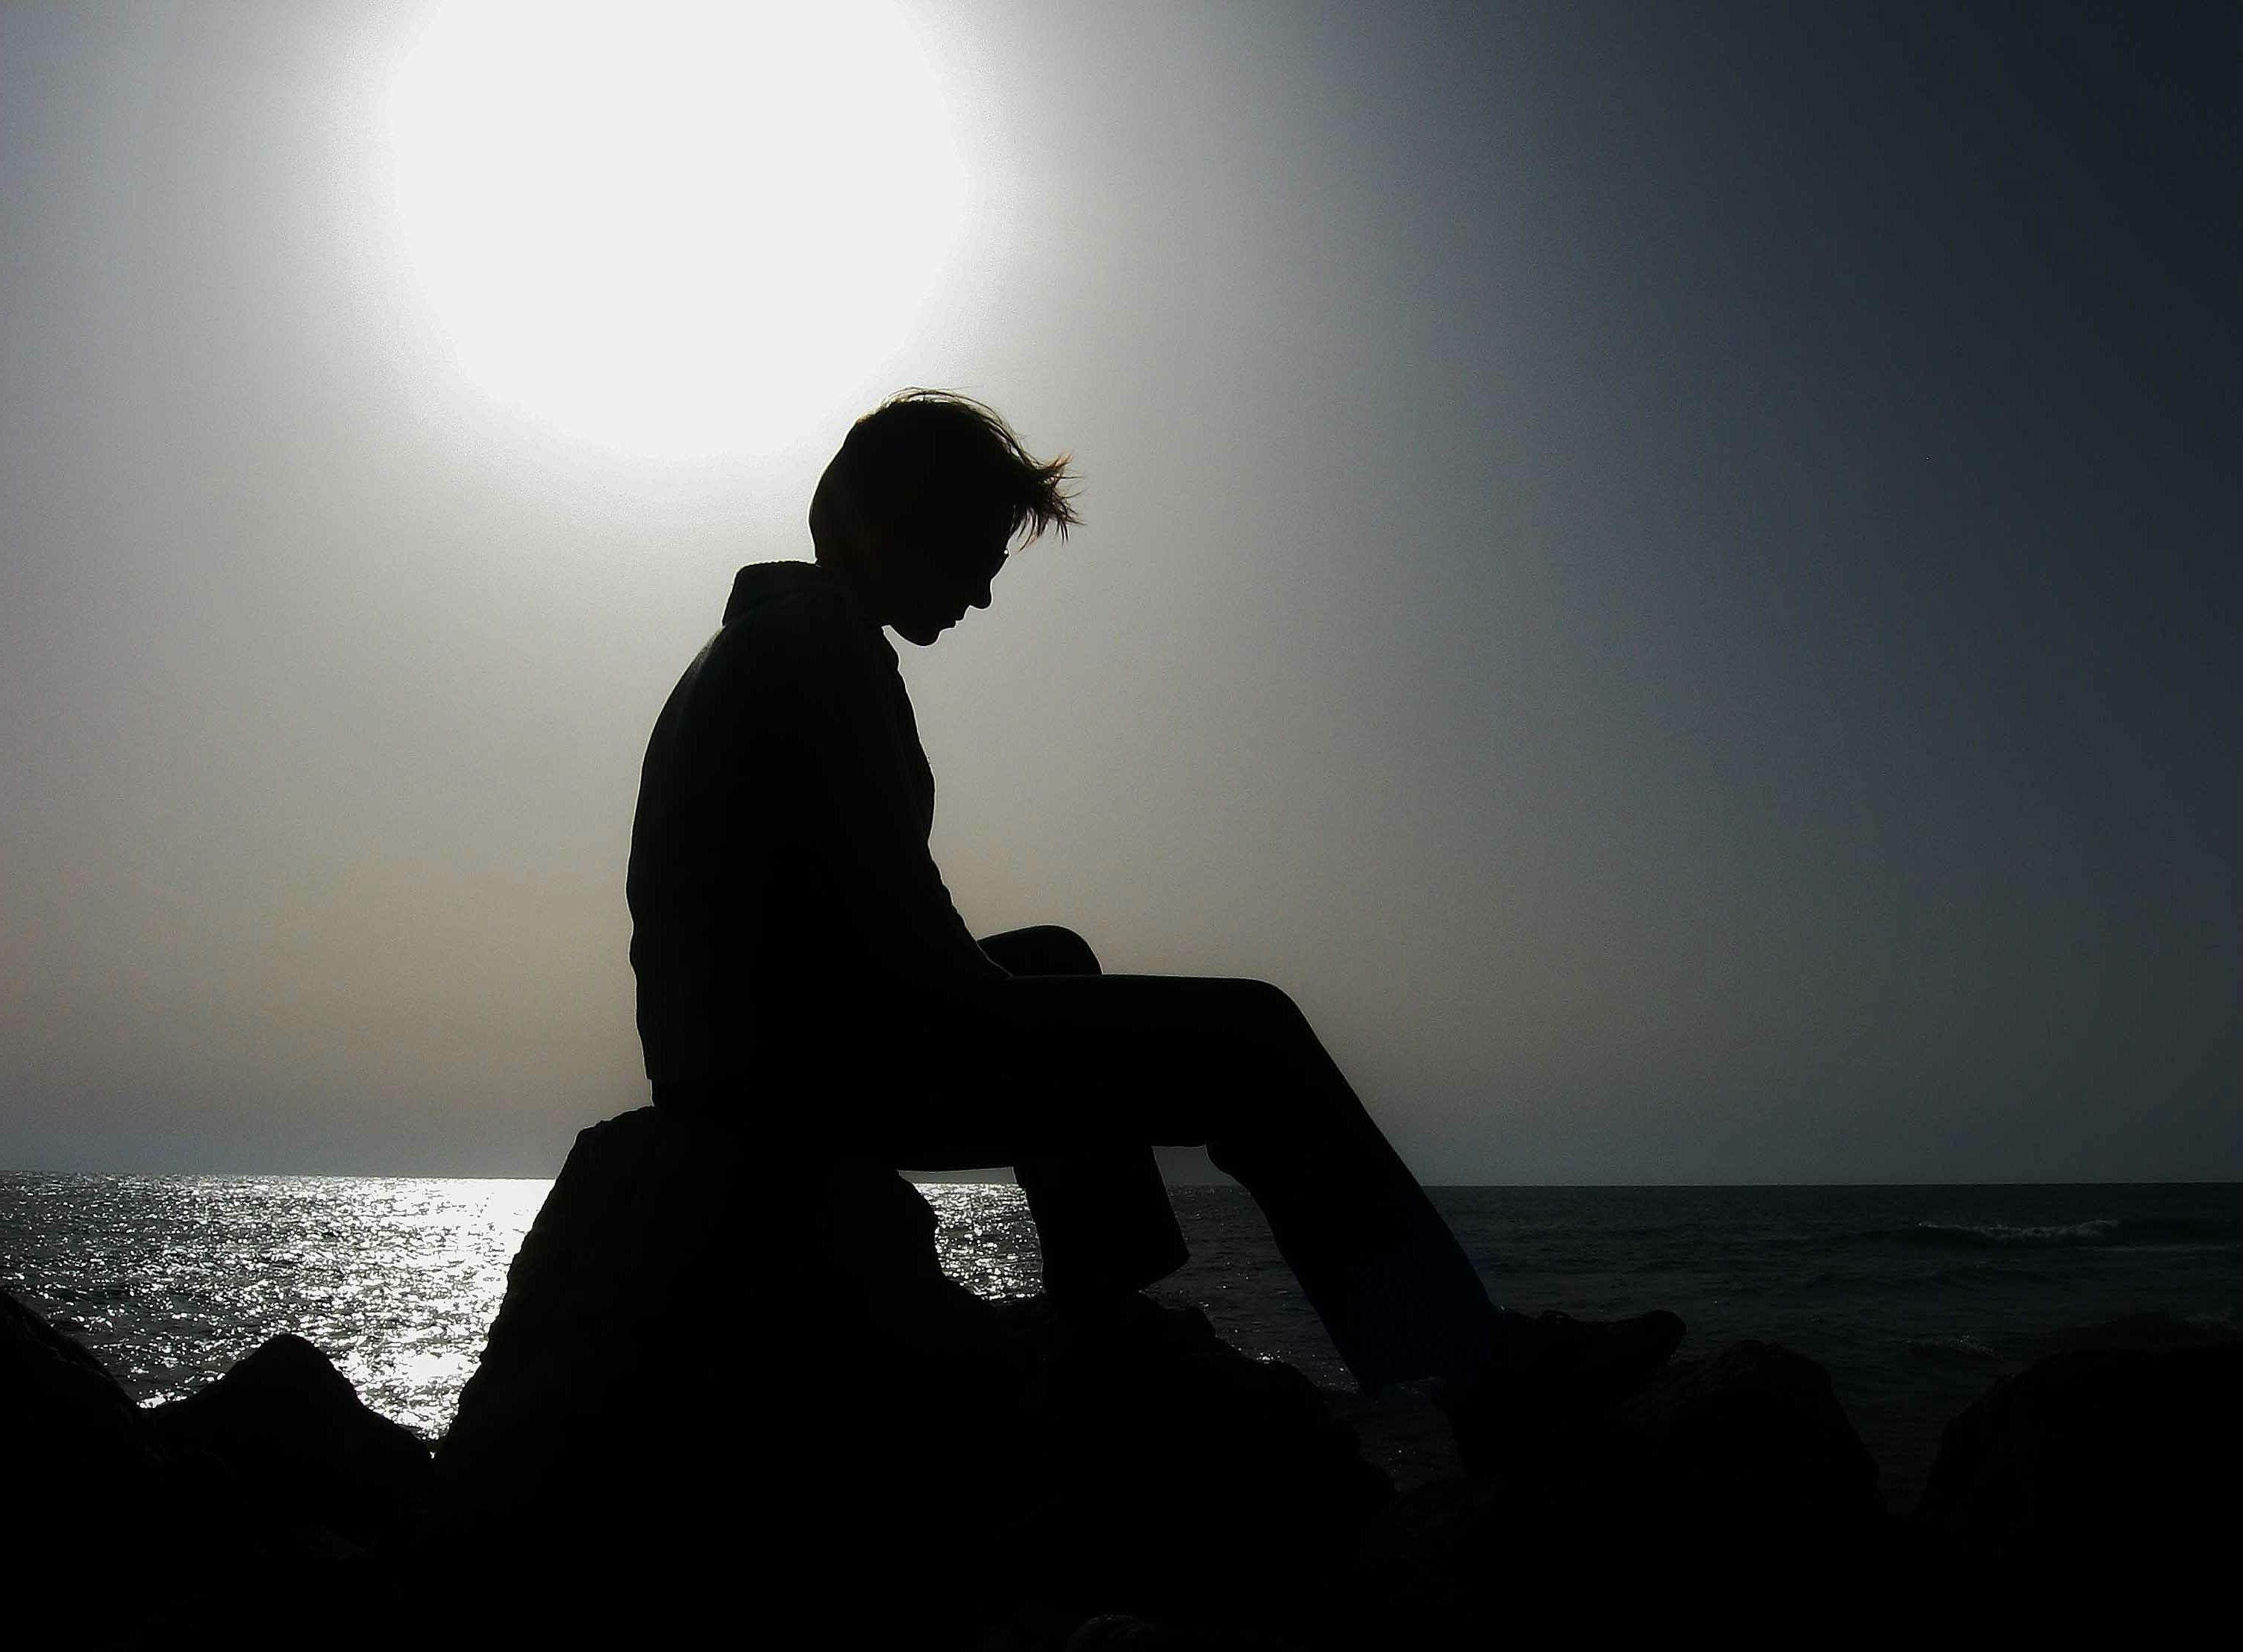 Alone Man Wallpapers - Wallpaper Cave